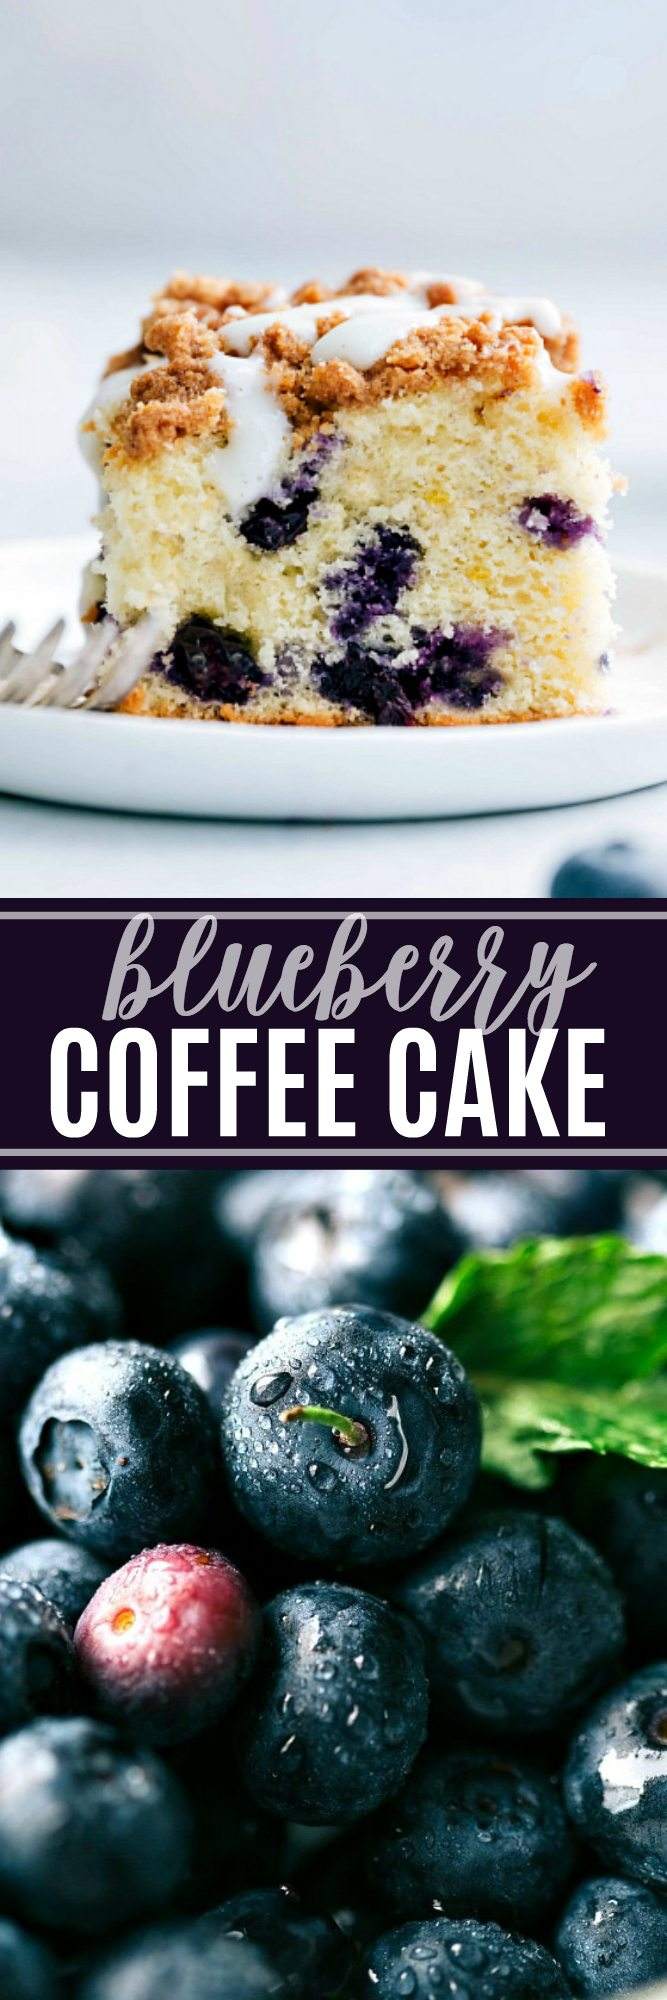 A delicious blueberry coffee cake with an easy glaze via chelseasmessyapron.com